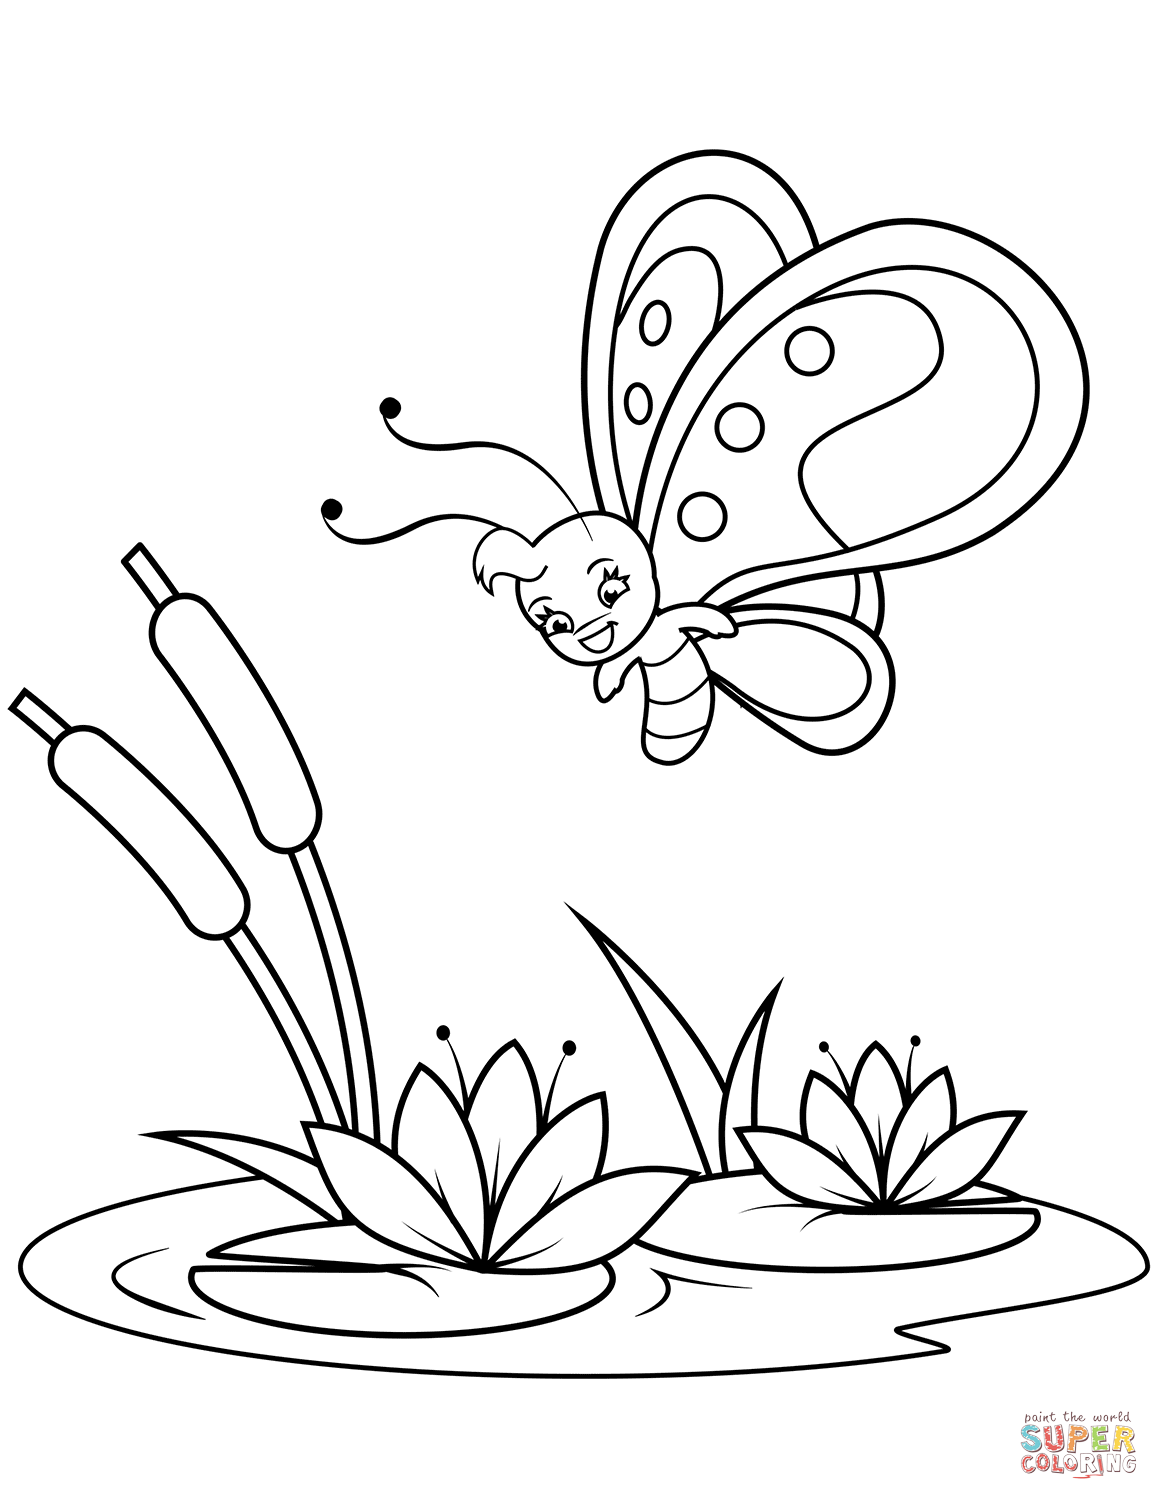 Cute Butterfly Flies Over Reeds And Water Lilies Coloring